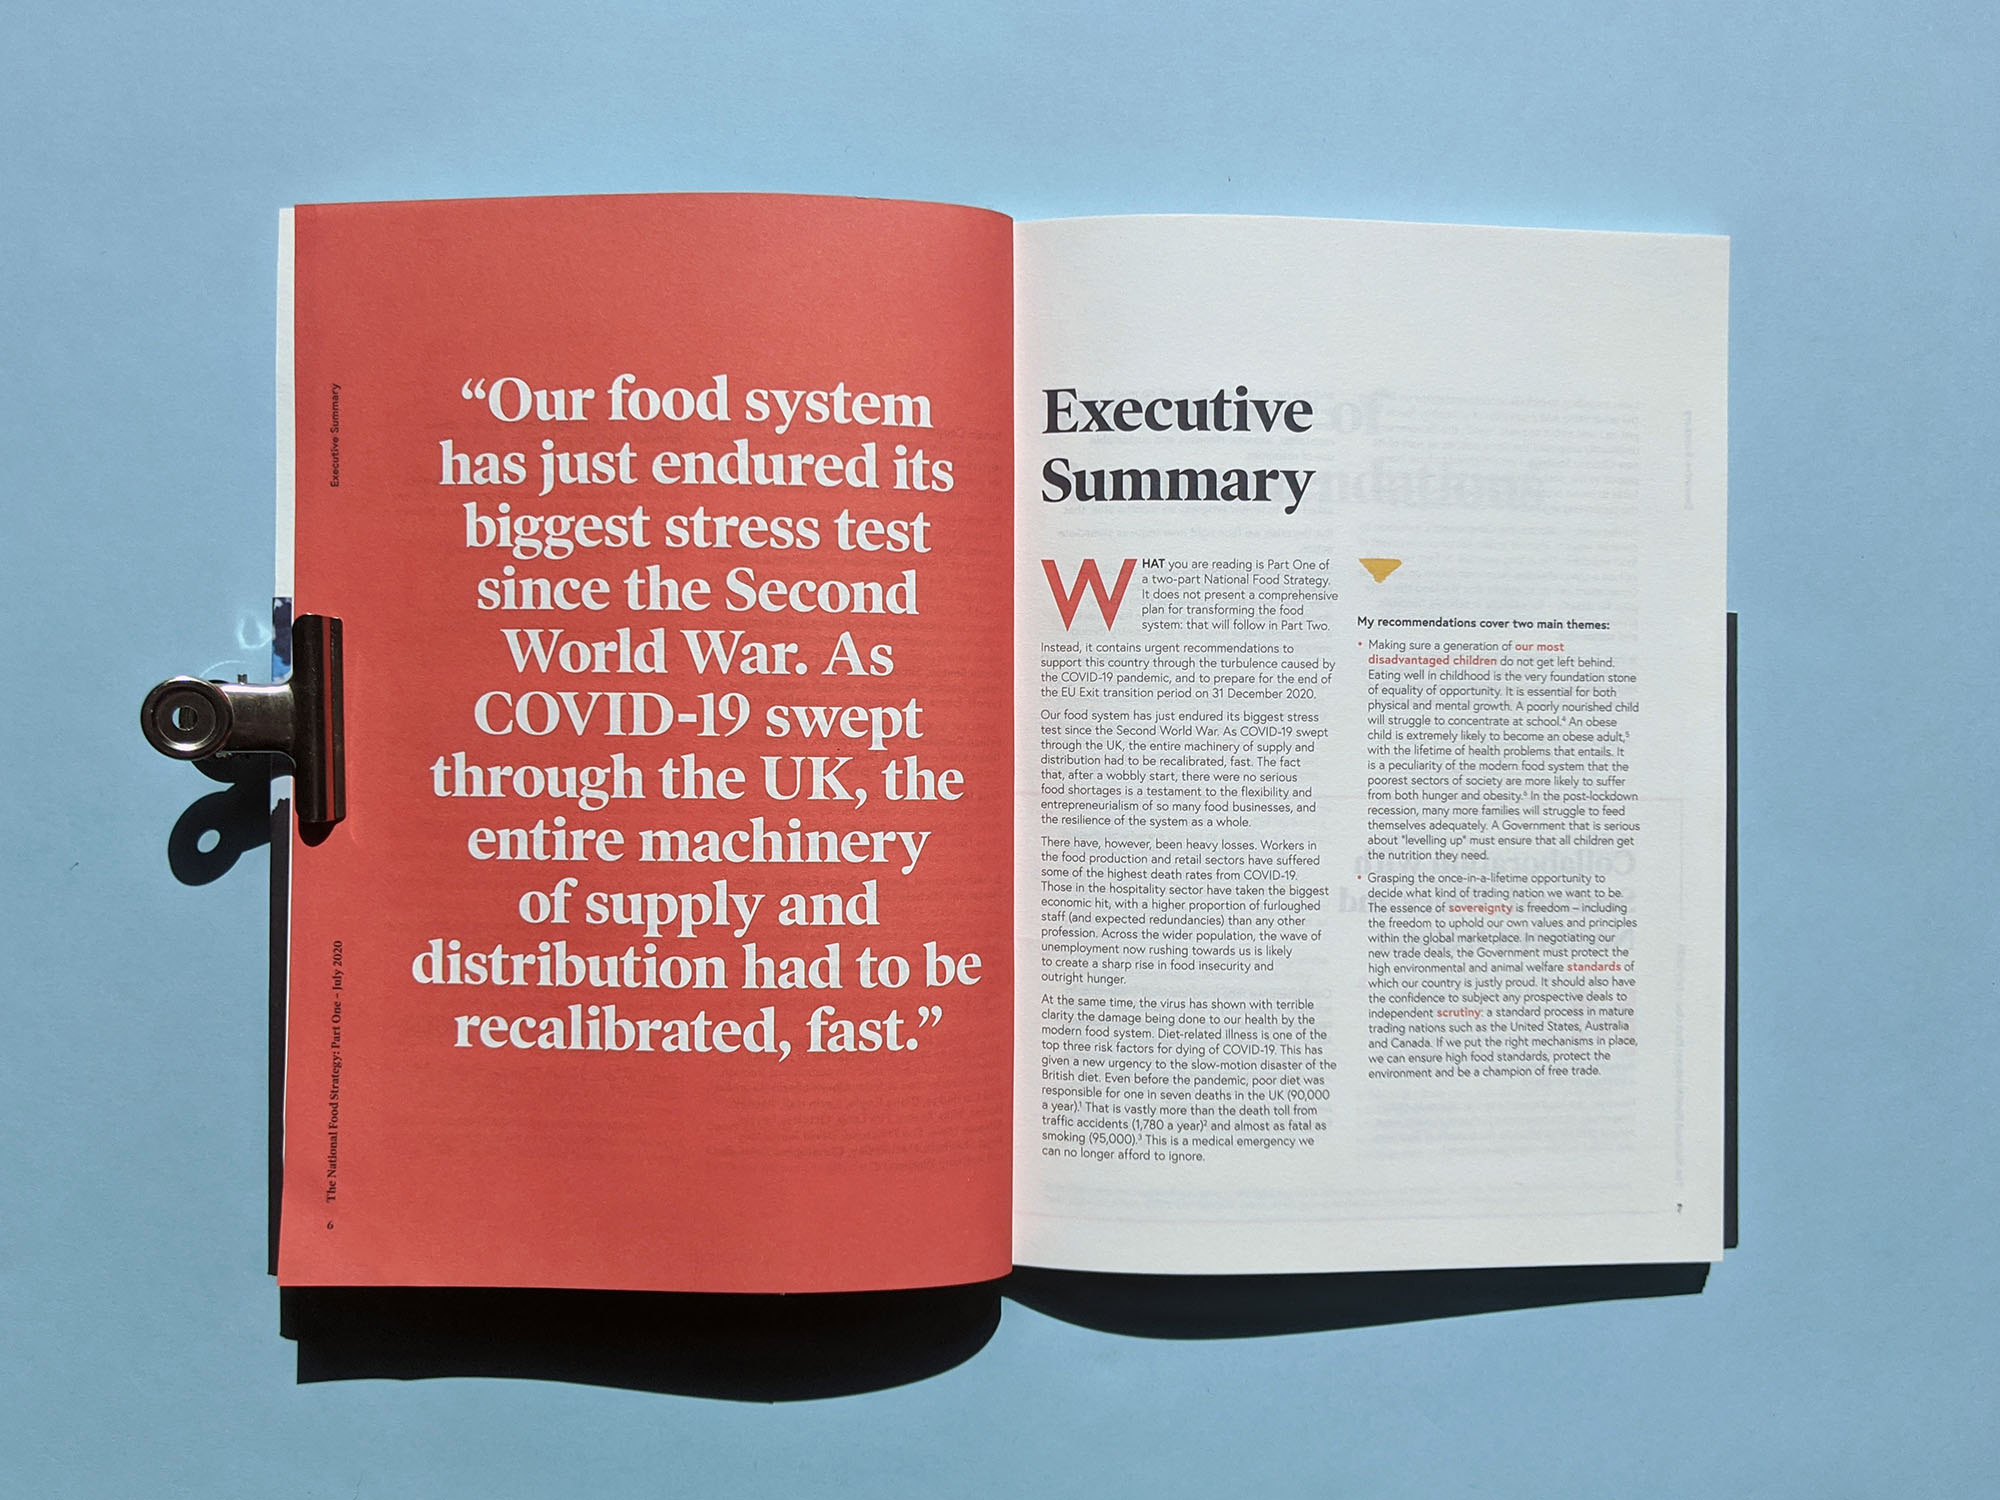 National Food Strategy Report Exec Summary